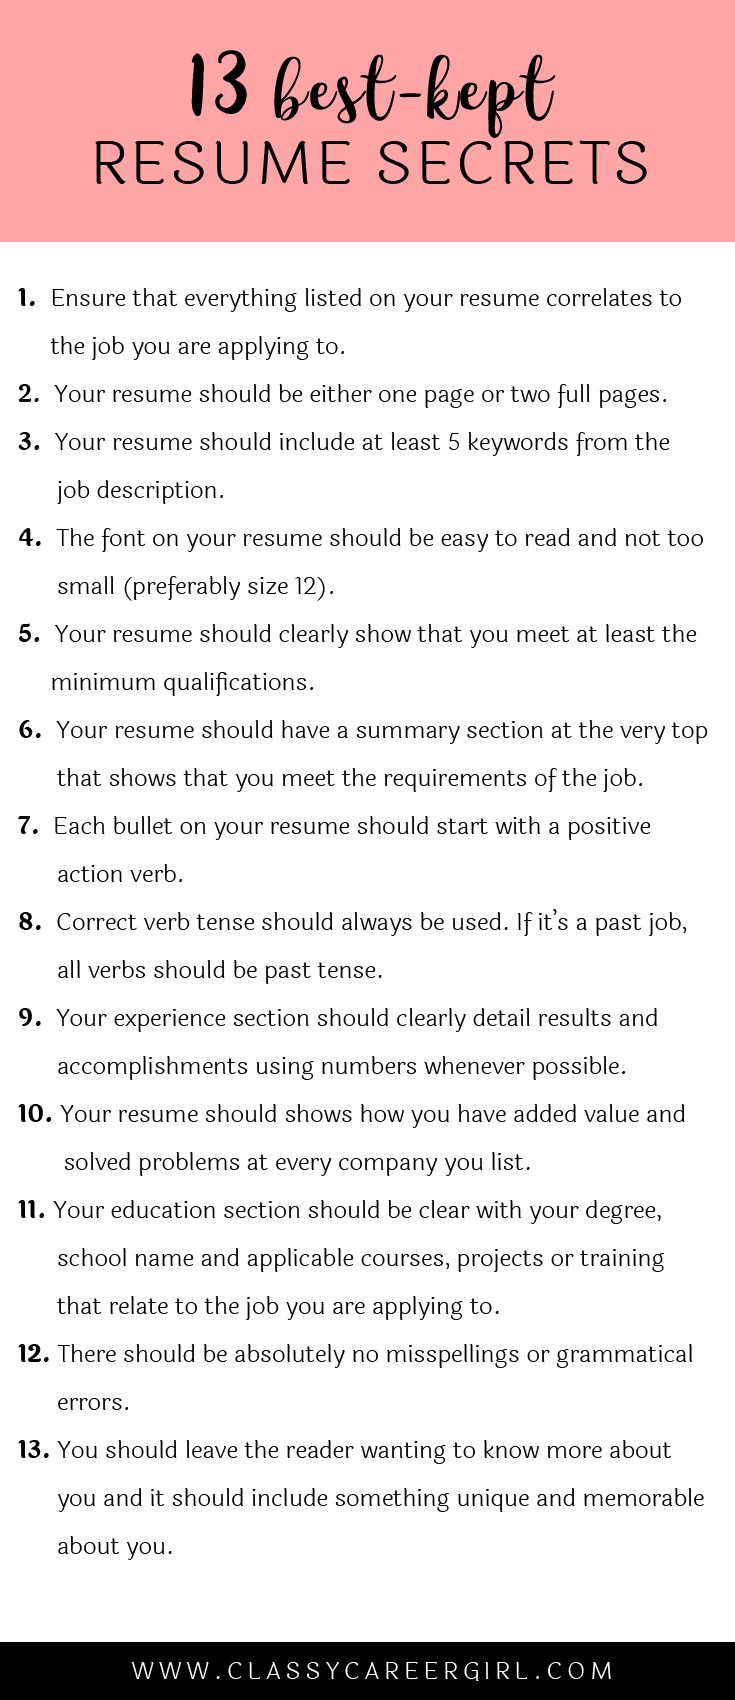 Opposenewapstandardsus  Winsome  Ideas About Resume On Pinterest  Cv Format Resume Cv And  With Entrancing Some Hiring Managers Will Toss Your Resume Out If You Dont Know These  With Extraordinary Nursing Resume Template Free Also Google Resume Examples In Addition Medical Interpreter Resume And Caregiver Resume Samples As Well As Resume For Hostess Additionally Resume For Graduate School Application From Pinterestcom With Opposenewapstandardsus  Entrancing  Ideas About Resume On Pinterest  Cv Format Resume Cv And  With Extraordinary Some Hiring Managers Will Toss Your Resume Out If You Dont Know These  And Winsome Nursing Resume Template Free Also Google Resume Examples In Addition Medical Interpreter Resume From Pinterestcom